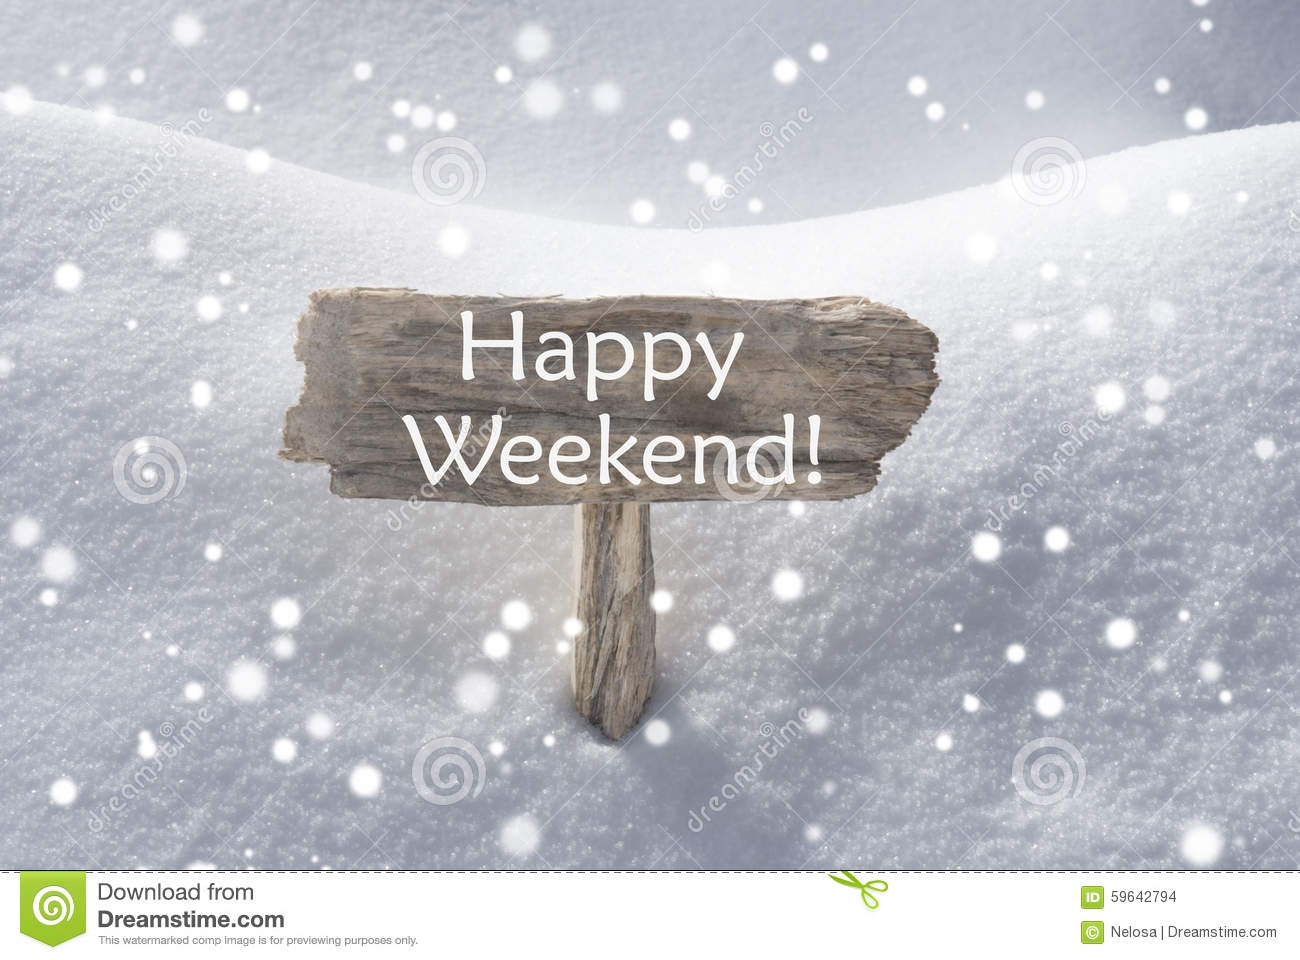 Image result for happy winter weekend